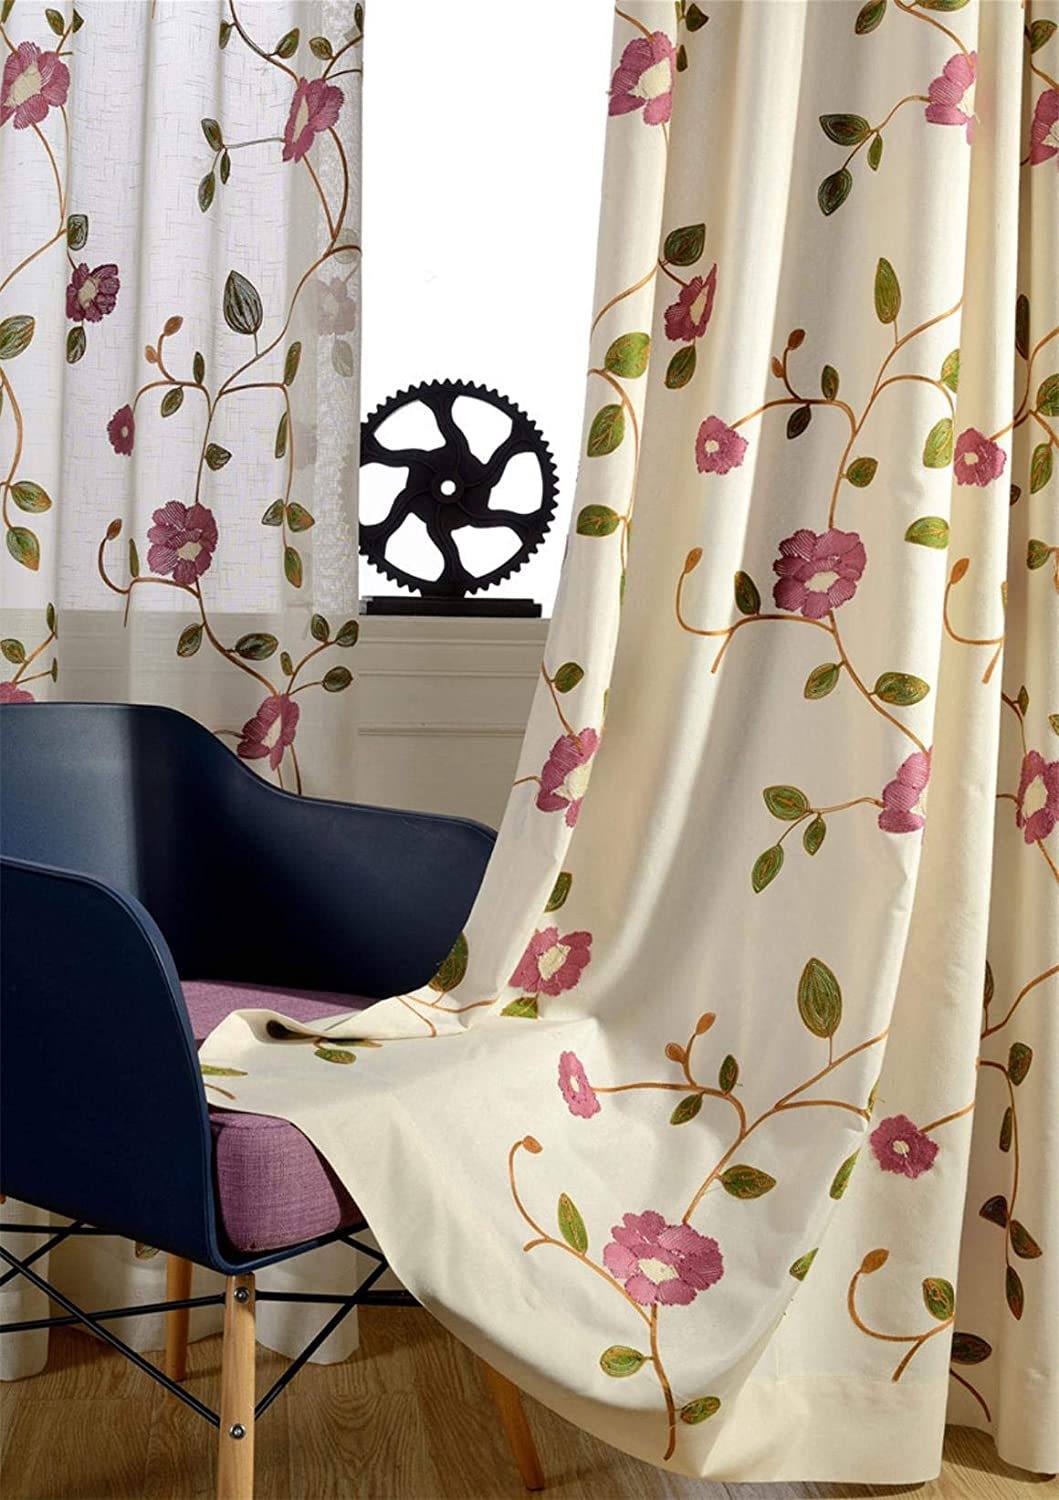 ZZCZZC 1 Set of 2 Panels Pink Flower Embroidery Curtains Elegant Floral Curtain Panels Window Dressing Natural Living Room Ring Top Half-Shading Drapes for Sliding Door 52 inch Wide by 84 inch Long